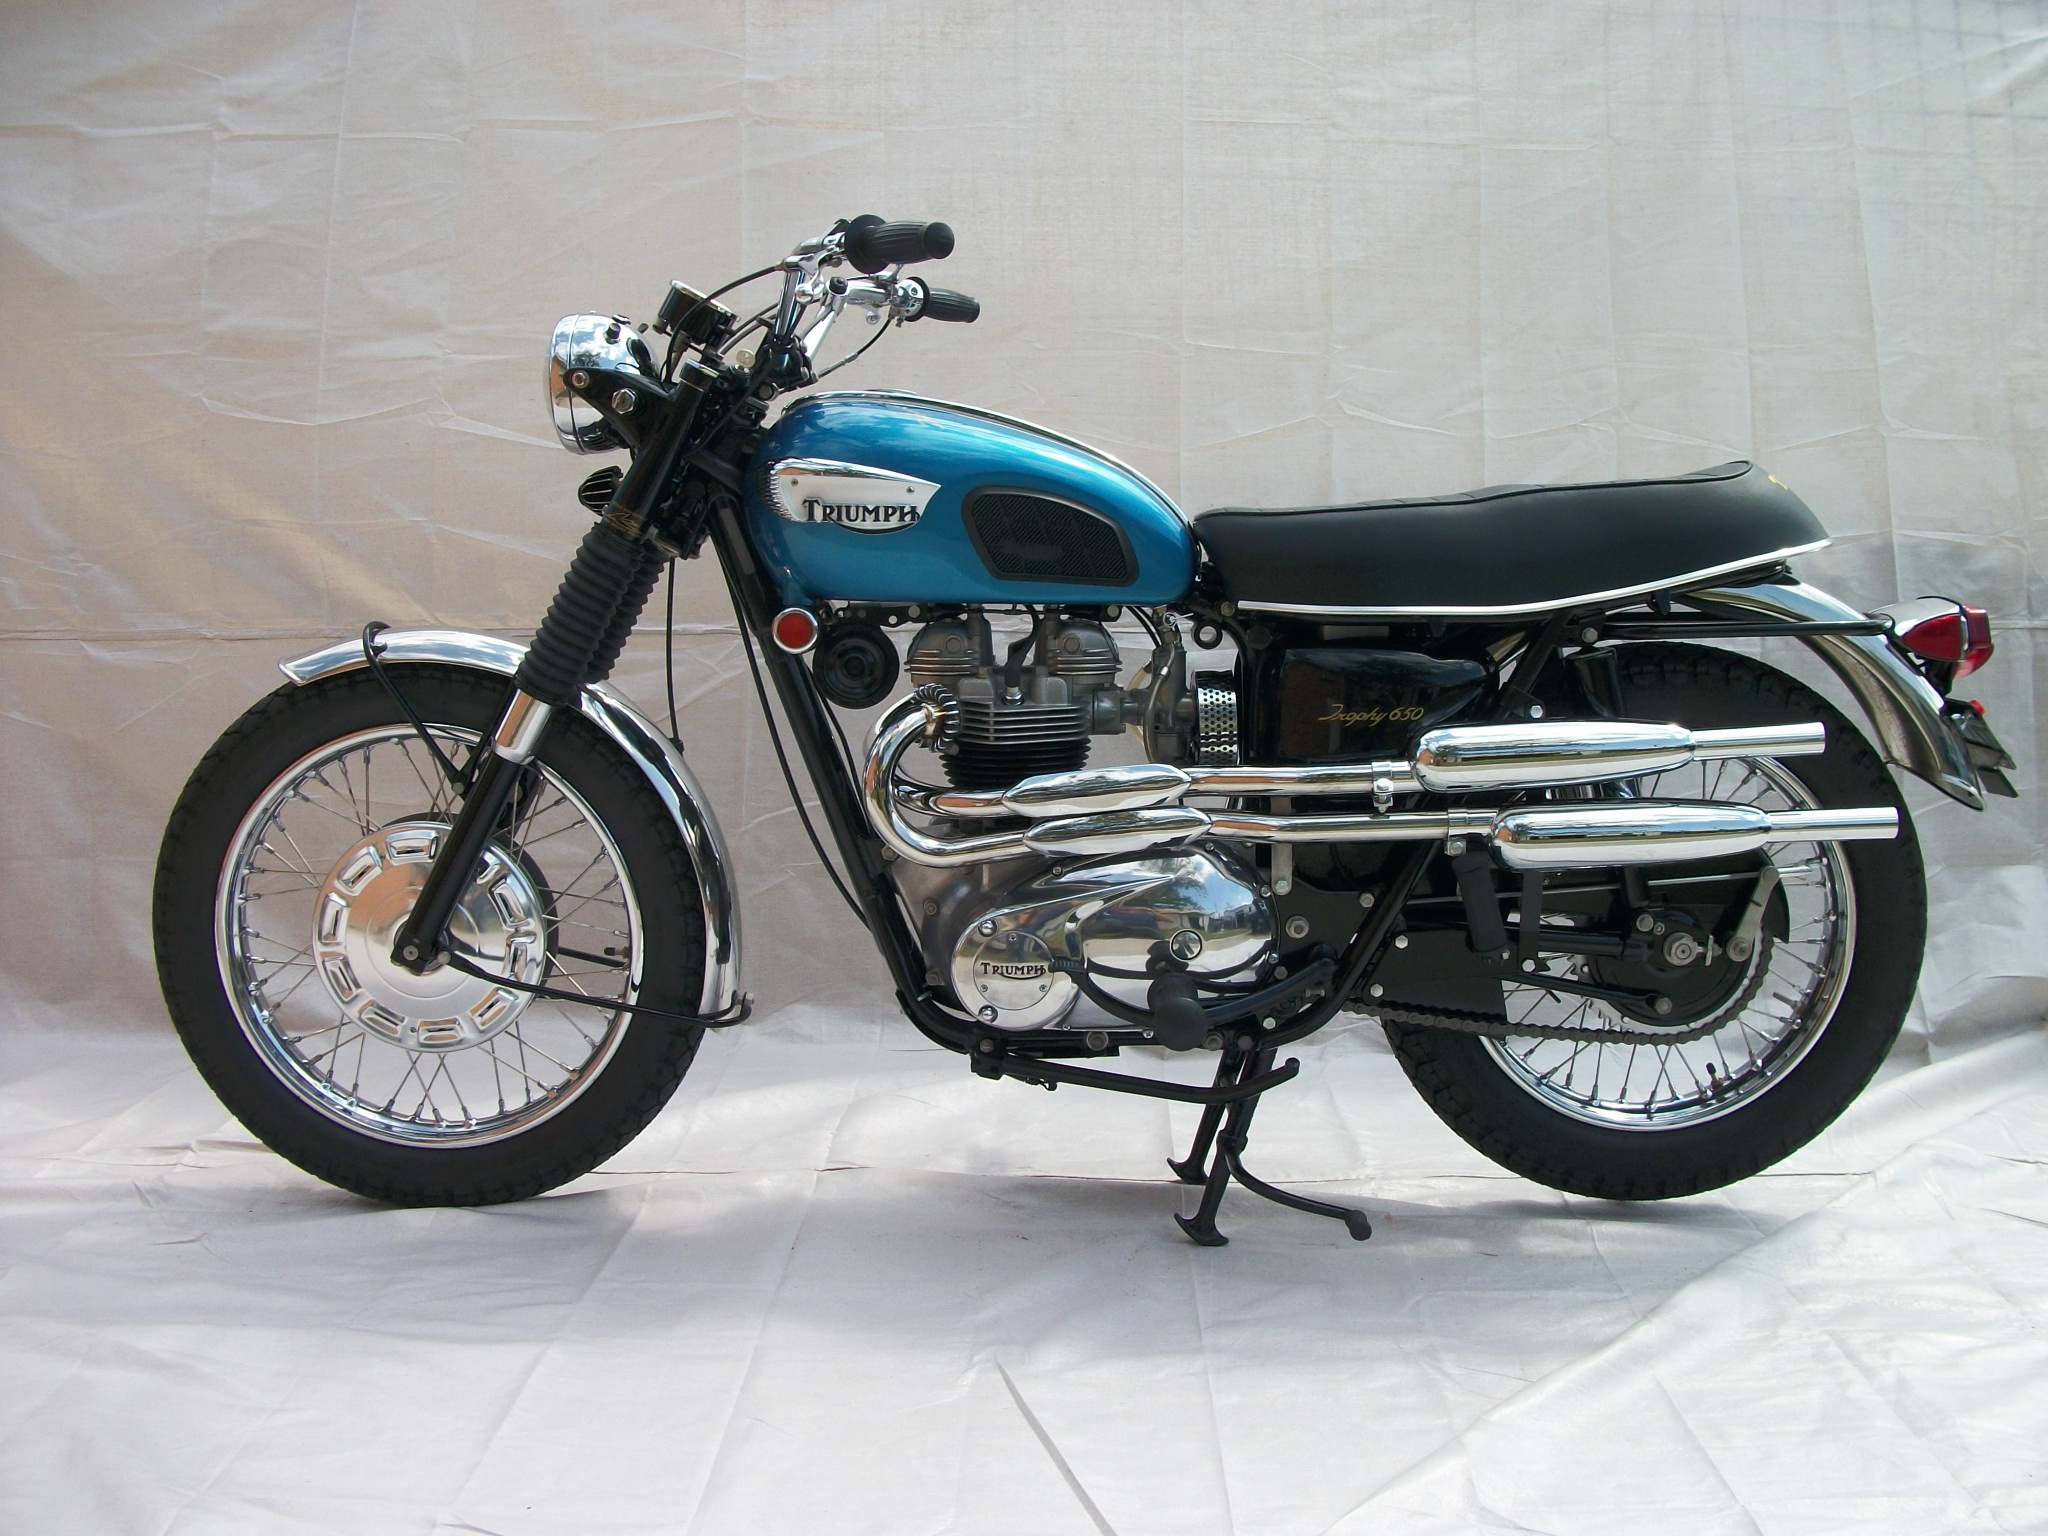 wayne's triumph motorcycles: for sale … two new leroy turner